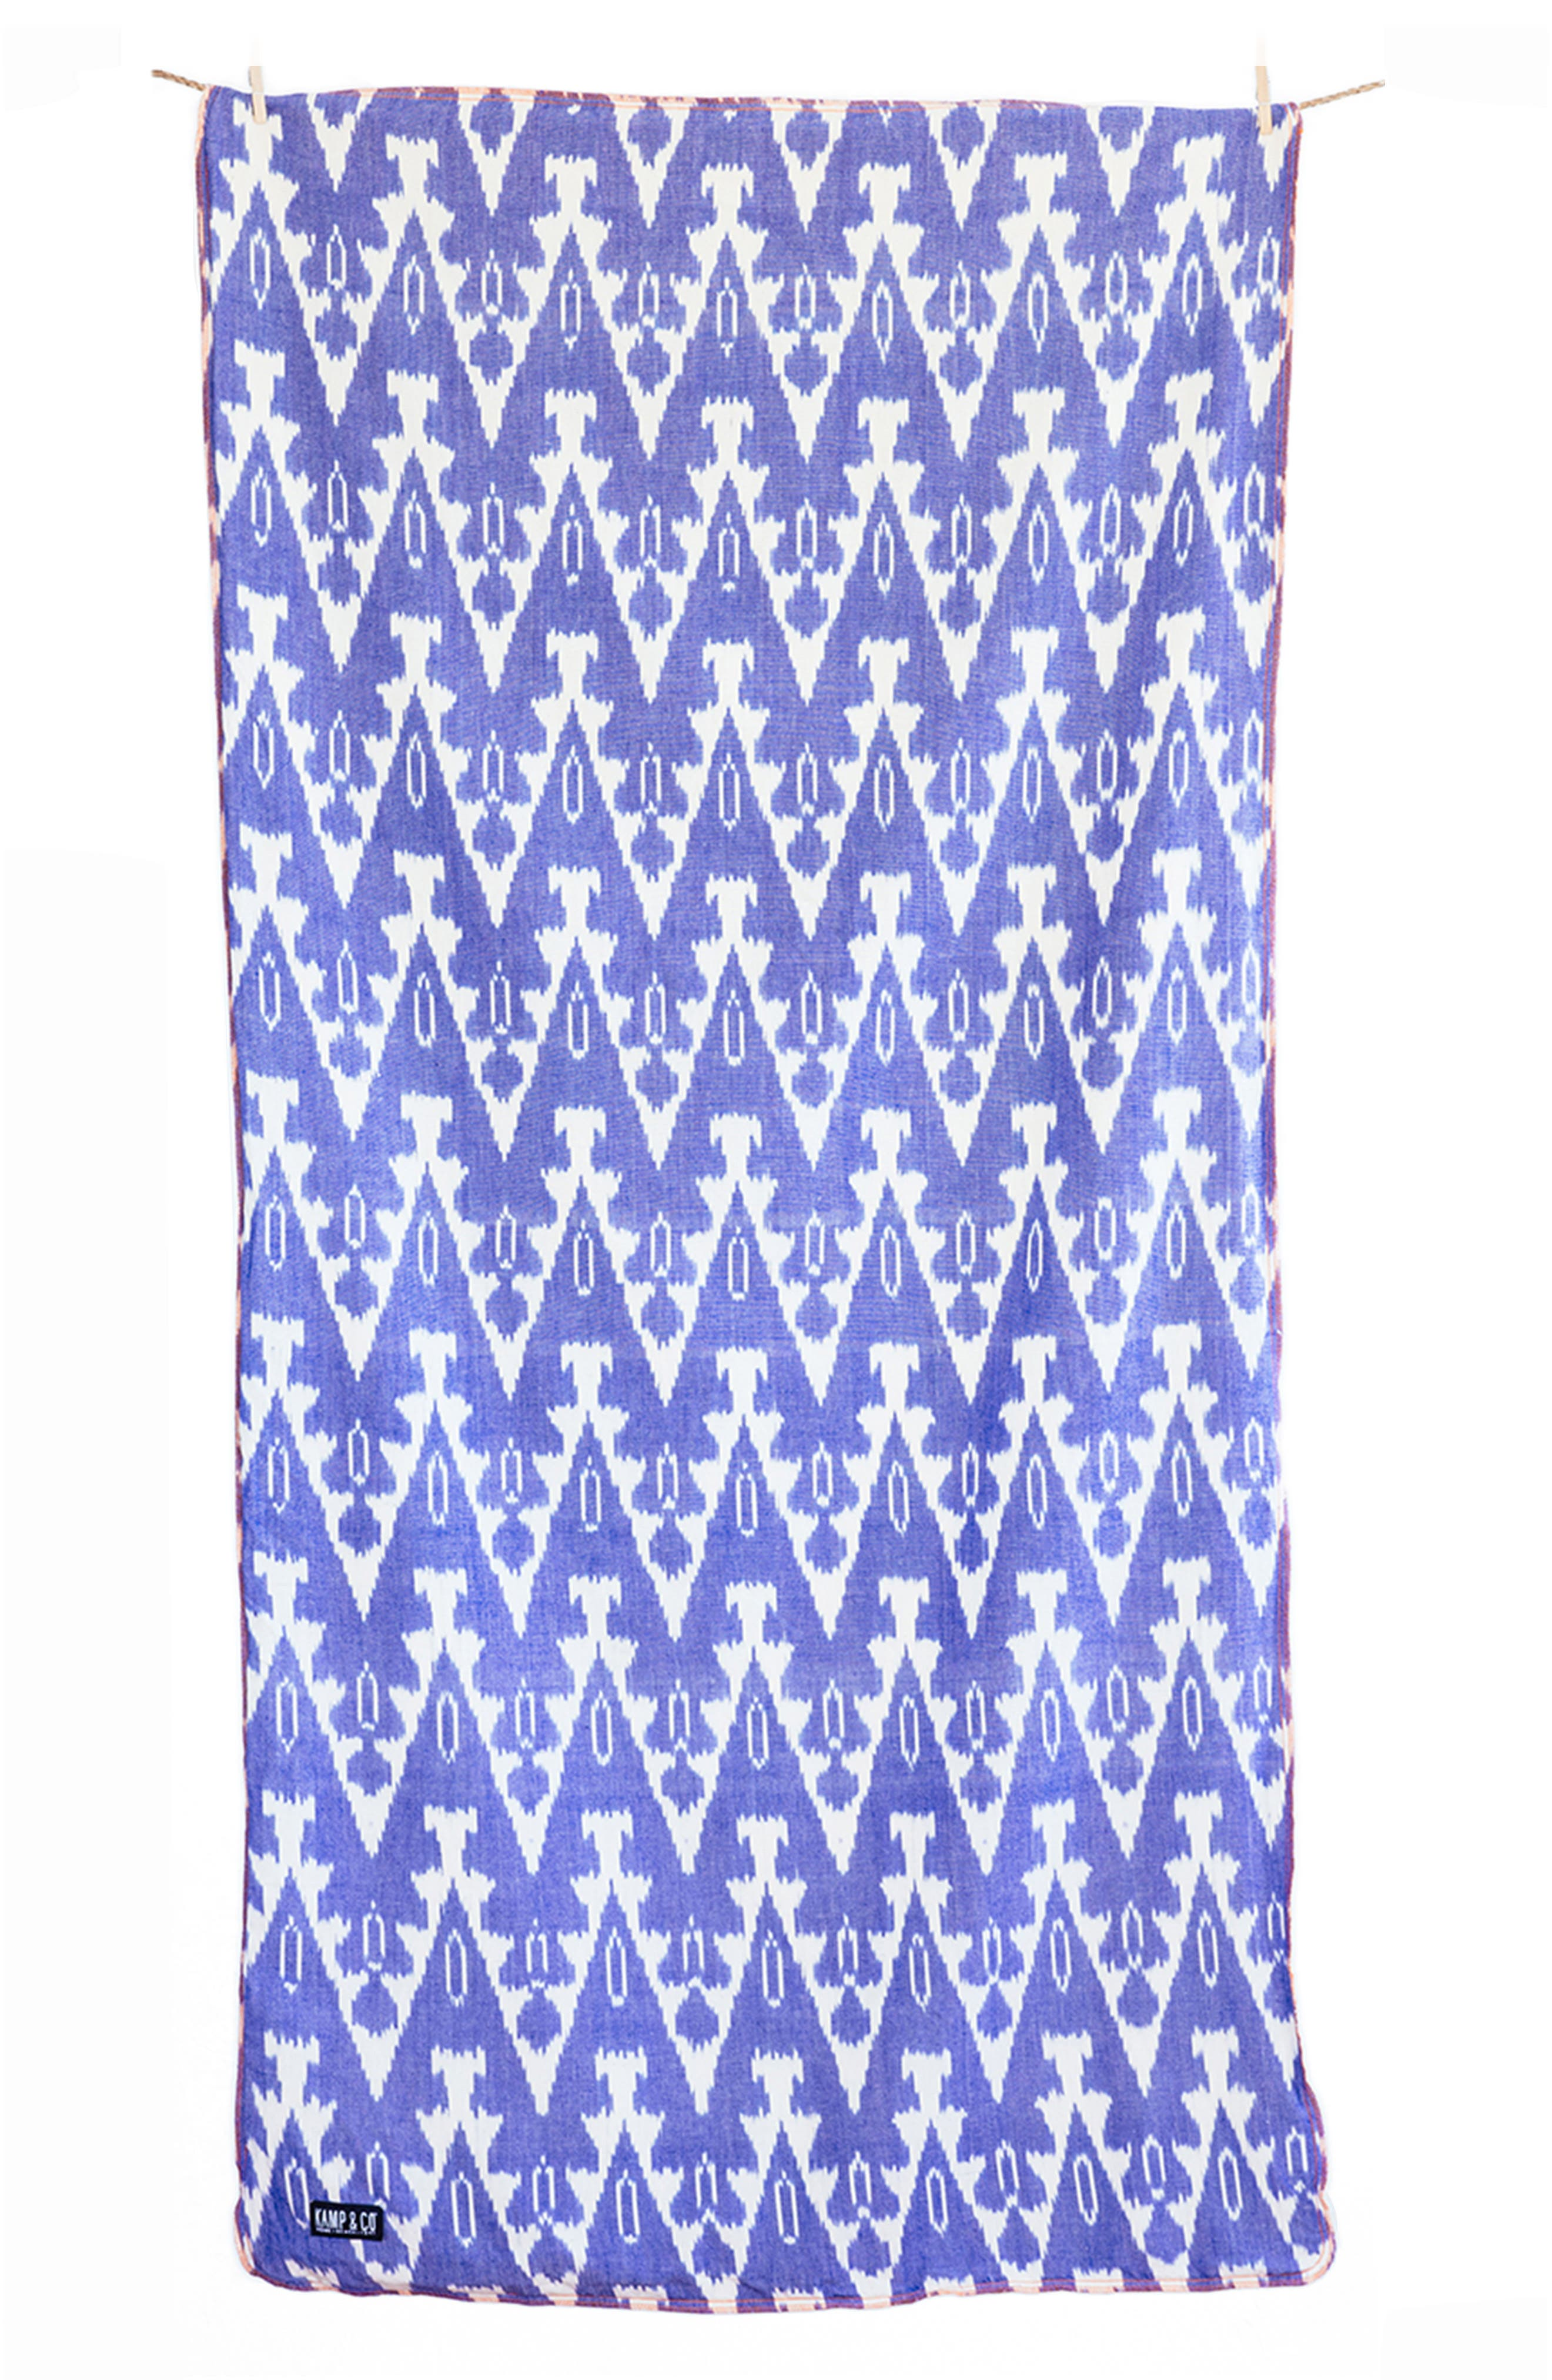 Kamp & Co. Torrey Kamp Towel